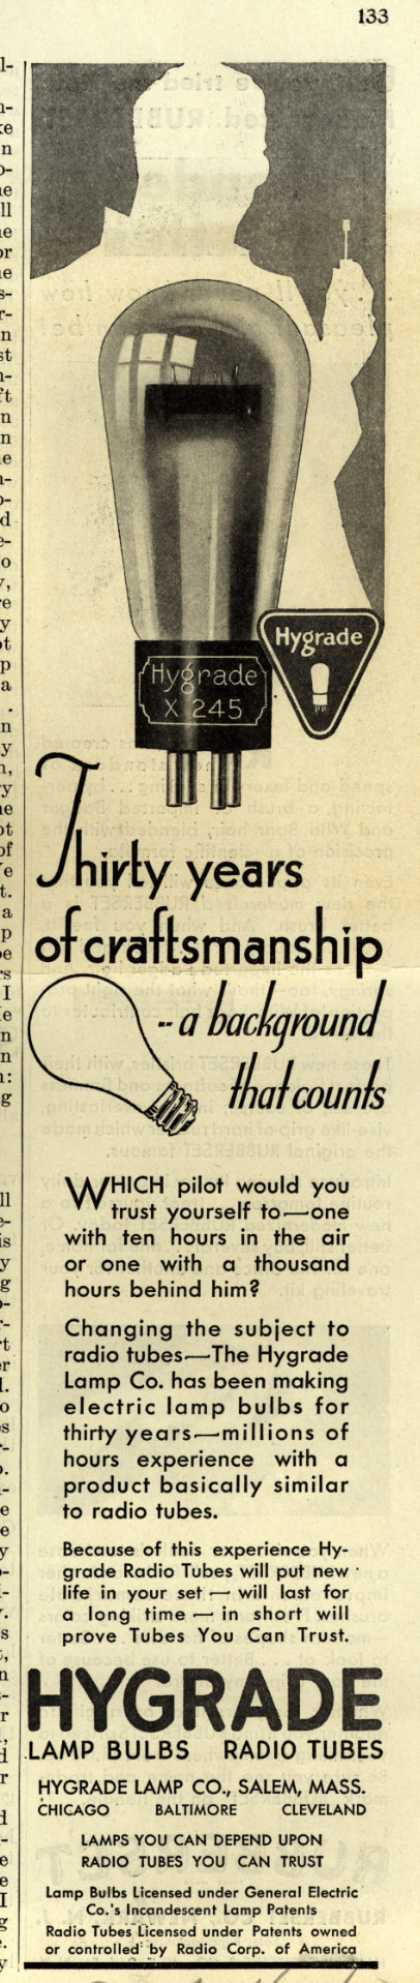 Hygrade Lamp Co.'s Radio Tubes – Thirty years of craftsmanship – a background that counts (1930)